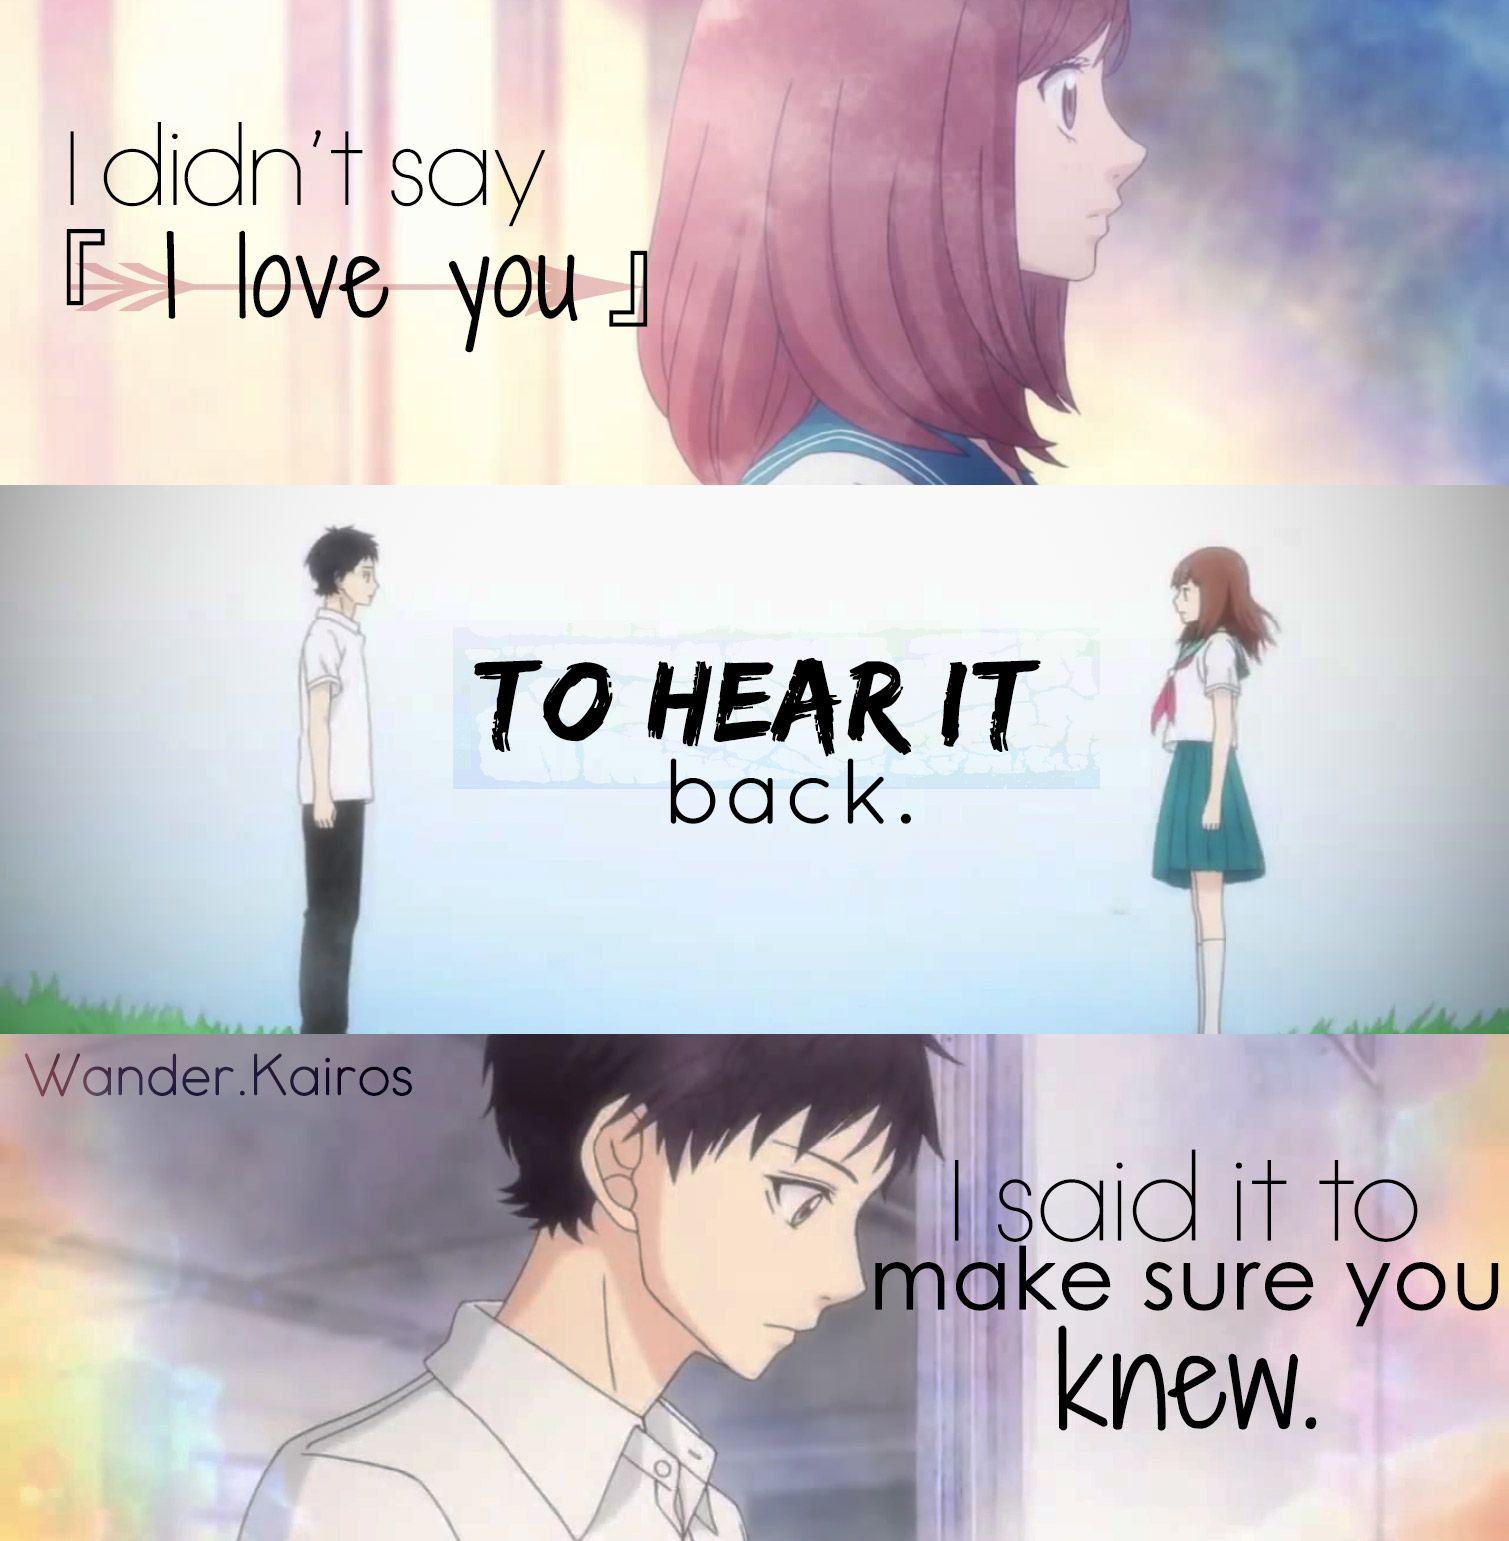 Love Anime Quotes Anime Quotes  Wanderkairos  My Shiz Edits  Anime Feelsquotes